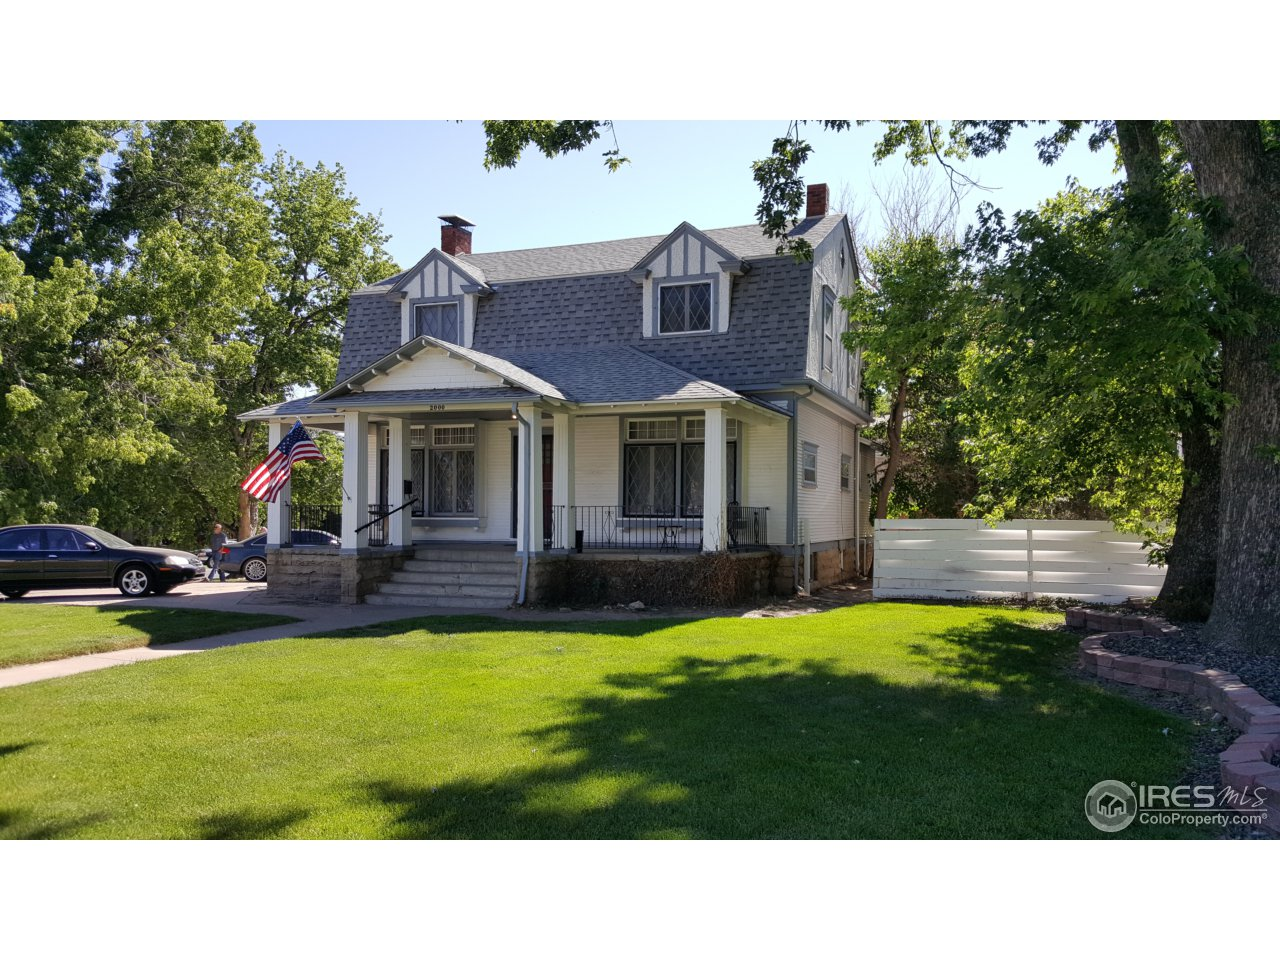 2000 8th Ave, Greeley, CO 80631